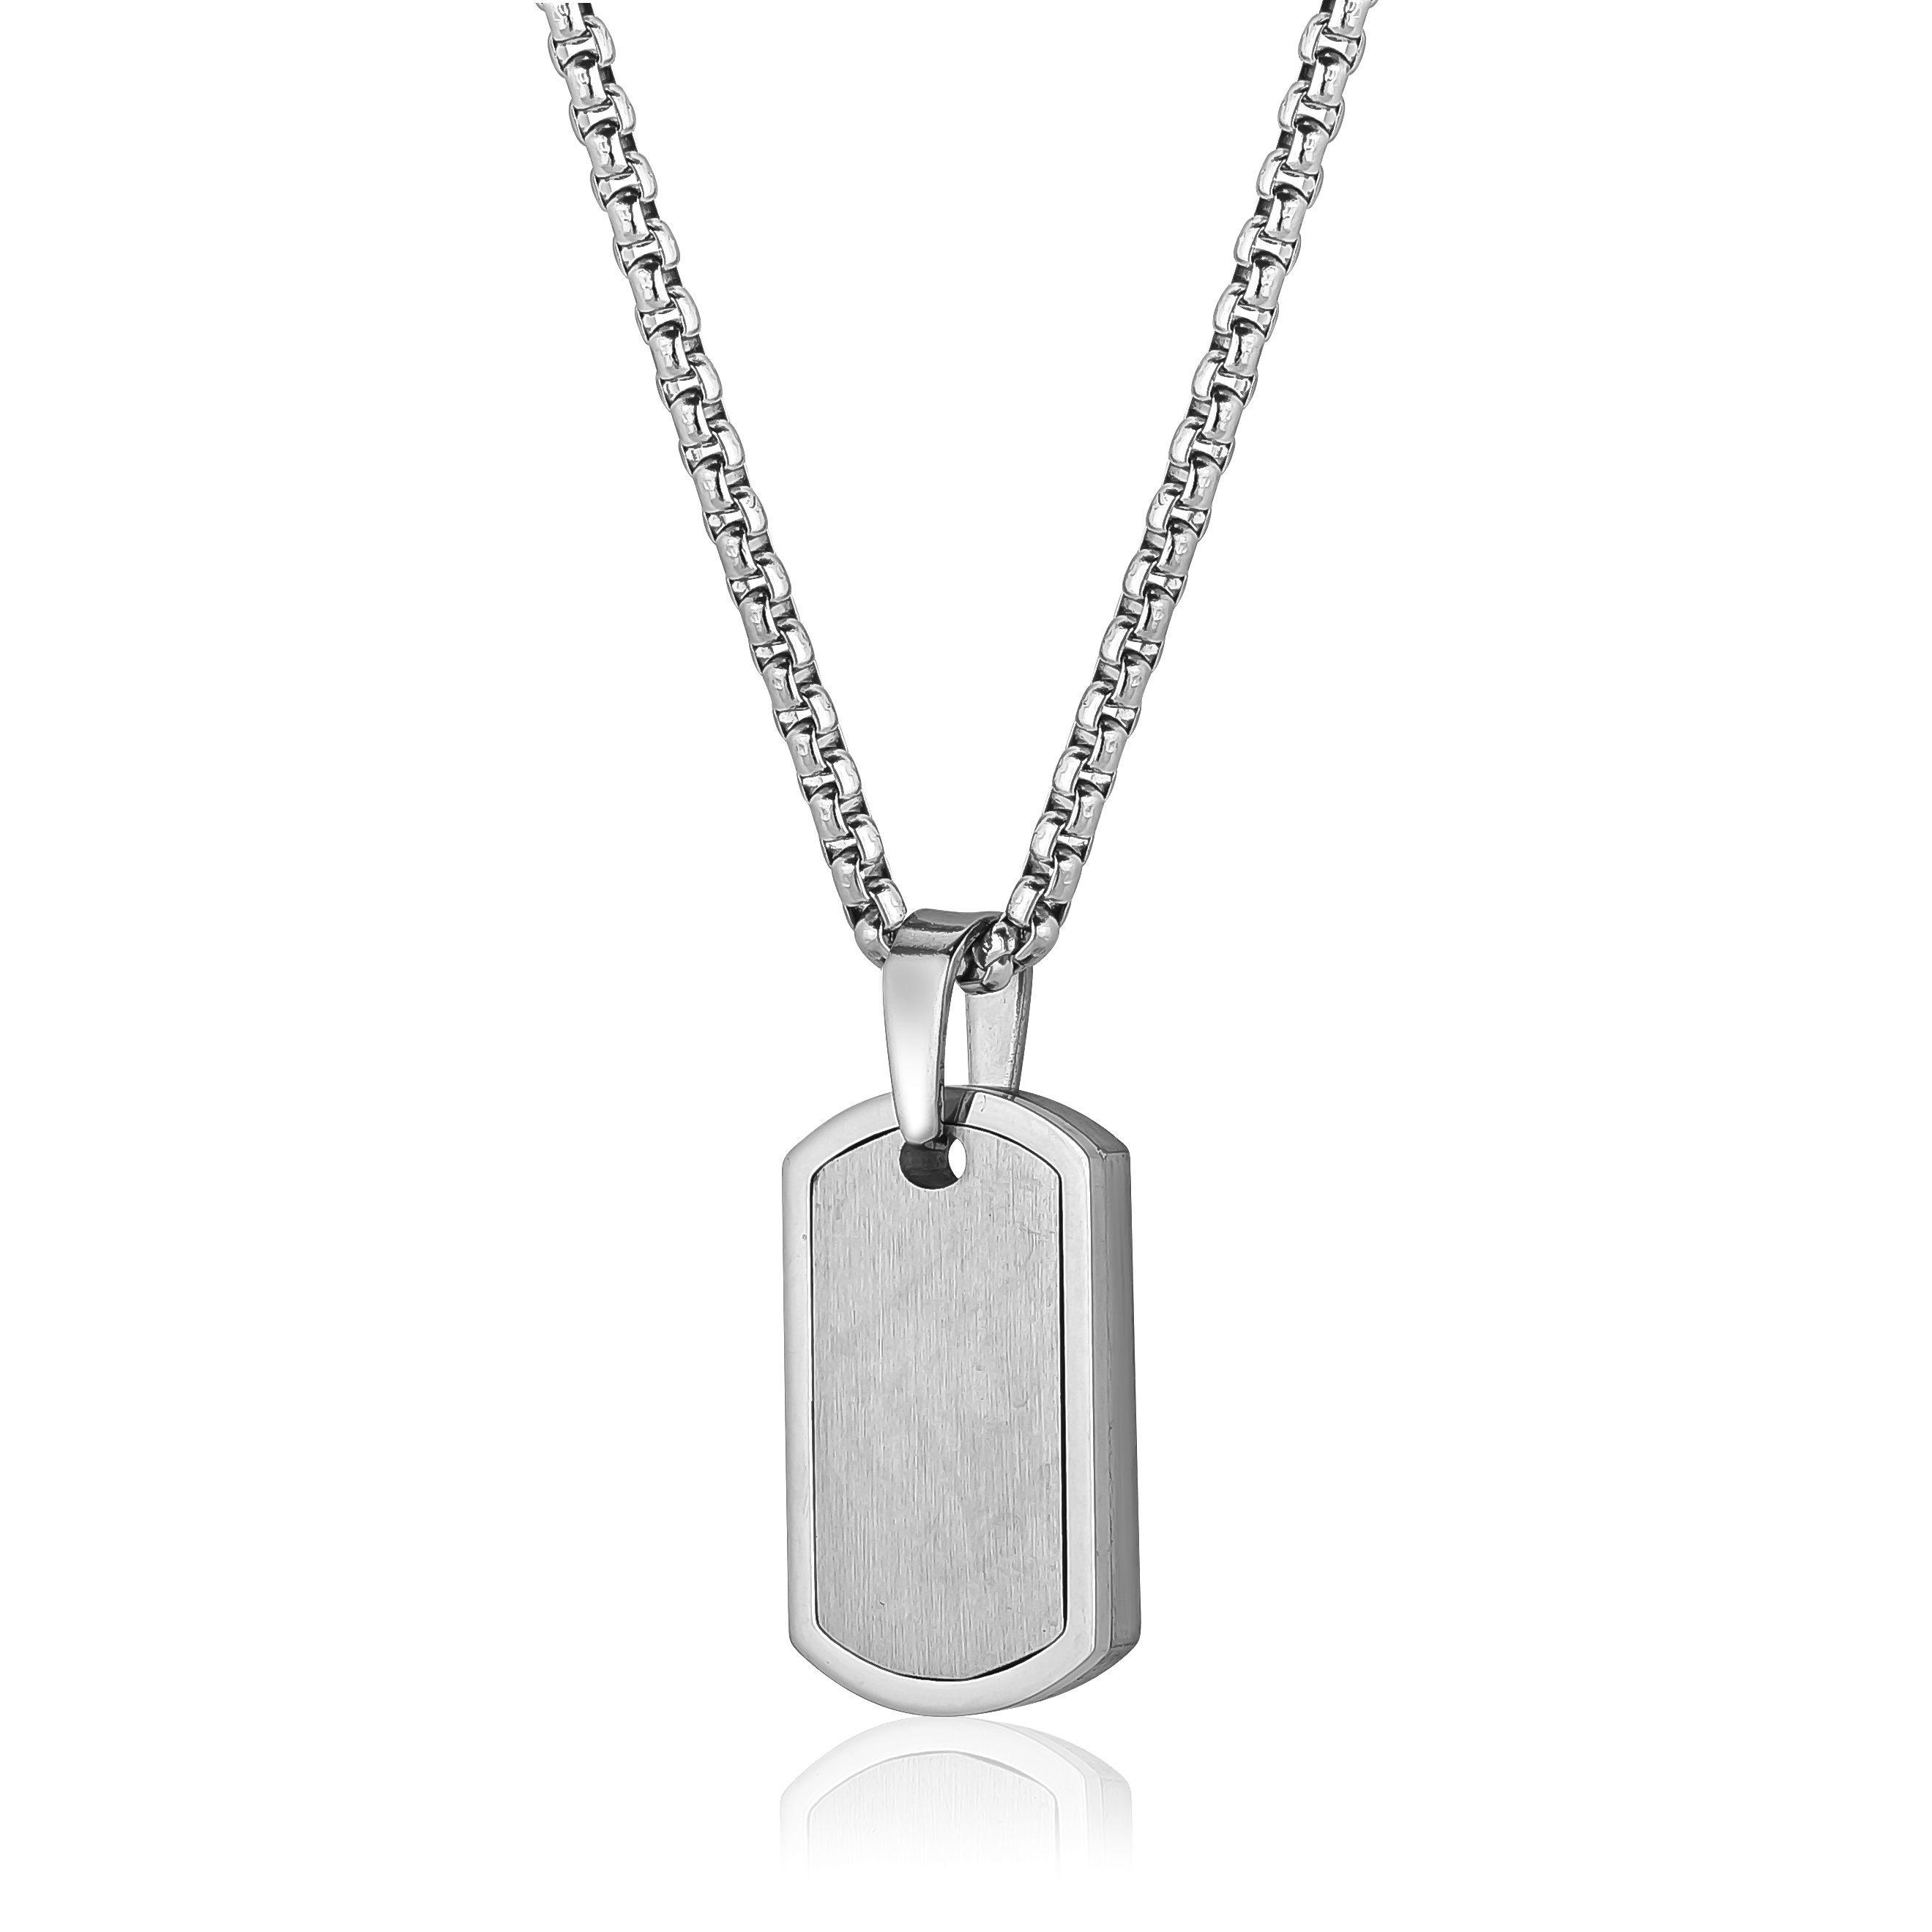 Plate necklace - Stainless steel